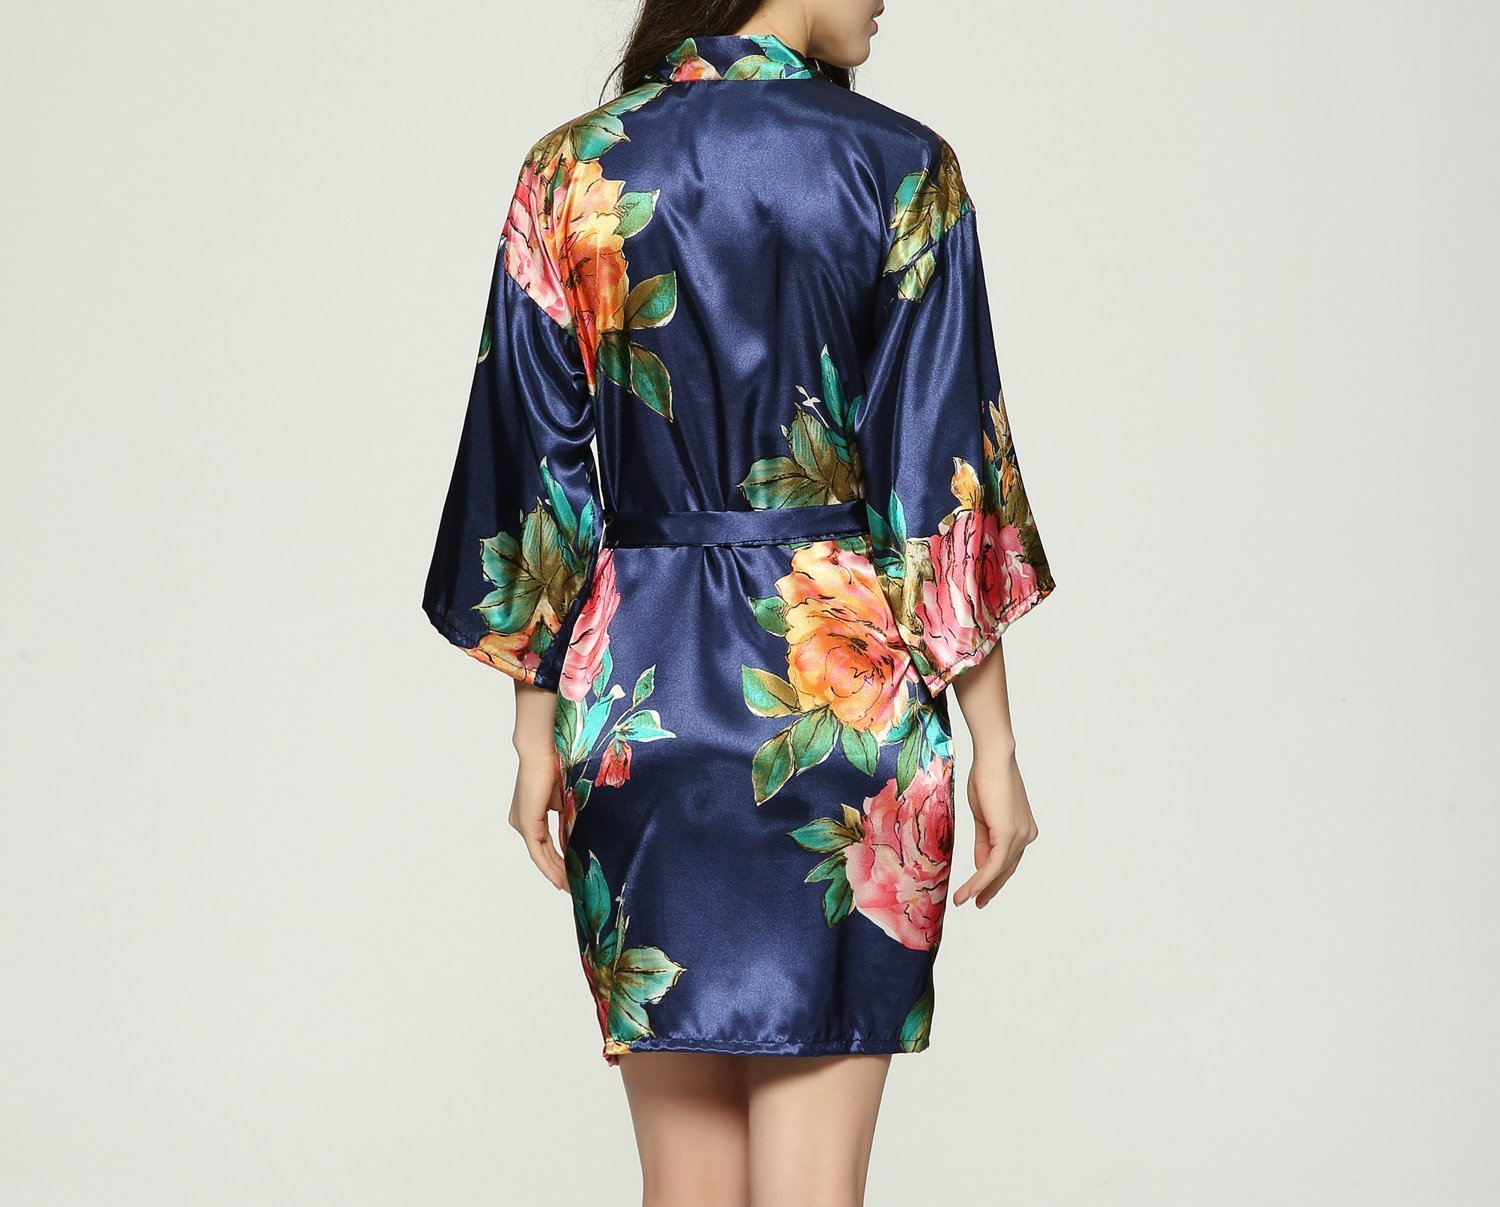 Satin Floral Print Robe - Lots of Colors!